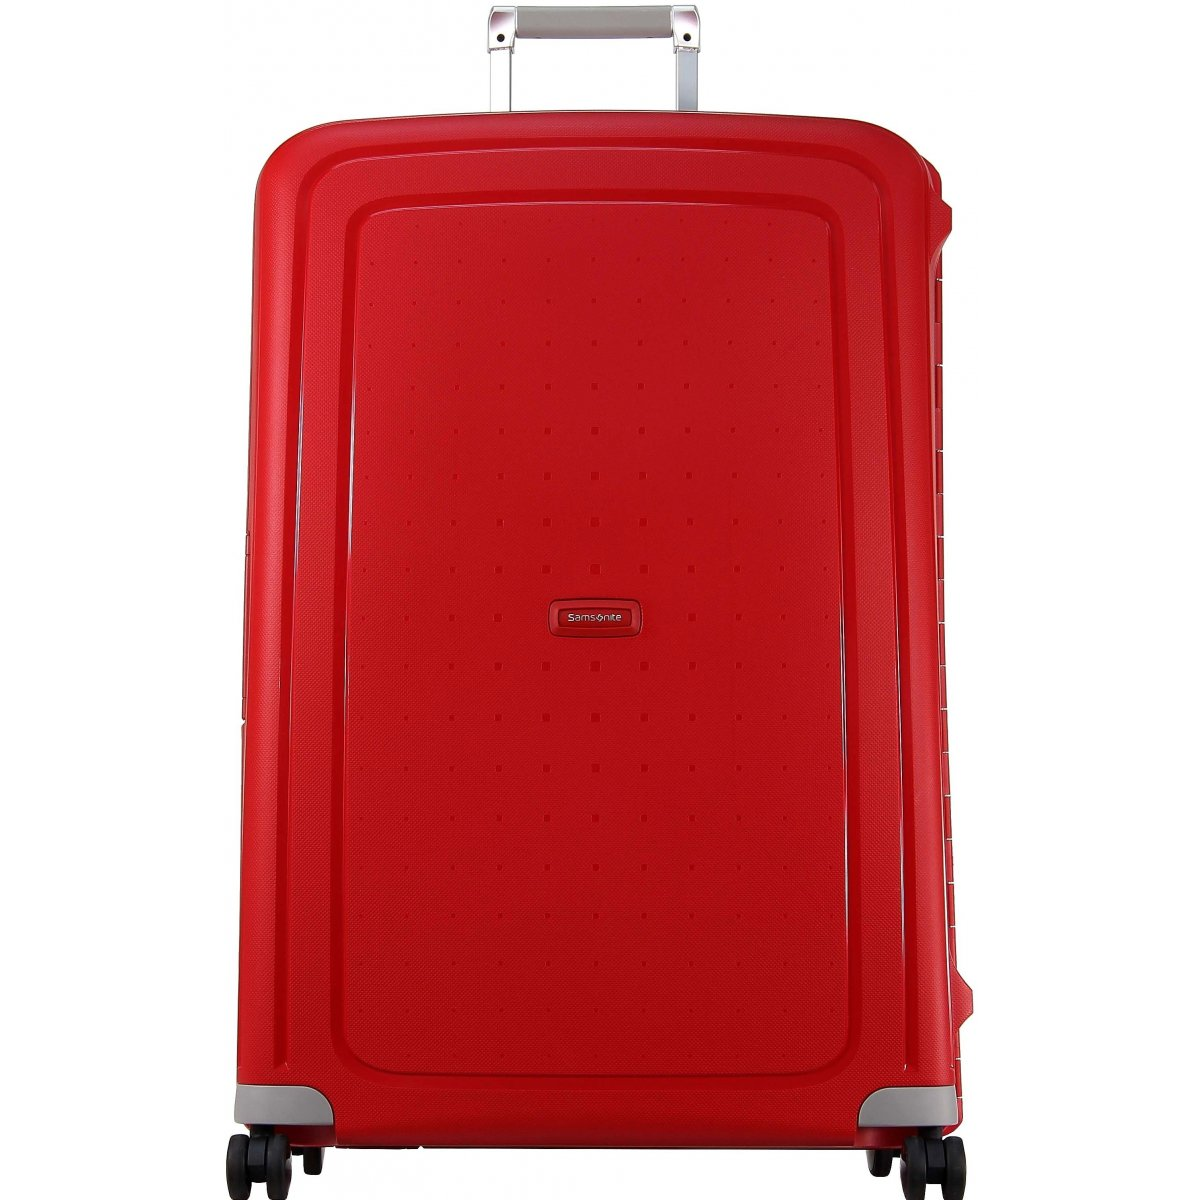 valise samsonite s 39 cure spinner 81cm scure44 couleur principale rouge solde. Black Bedroom Furniture Sets. Home Design Ideas